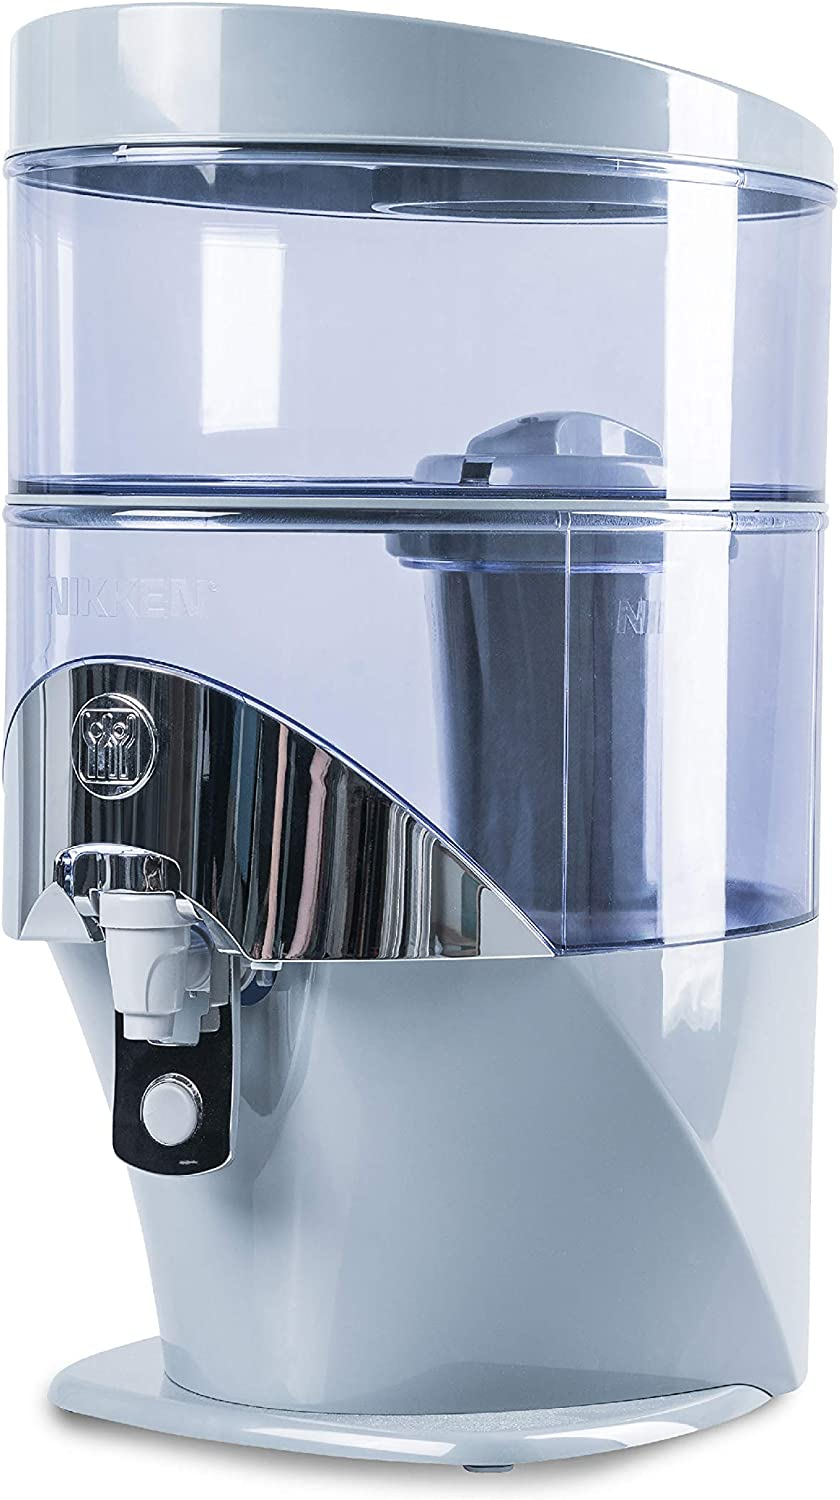 Gravity Max 71% OFF Popular products Water Filter Purifier System 1384 Techn - Advanced